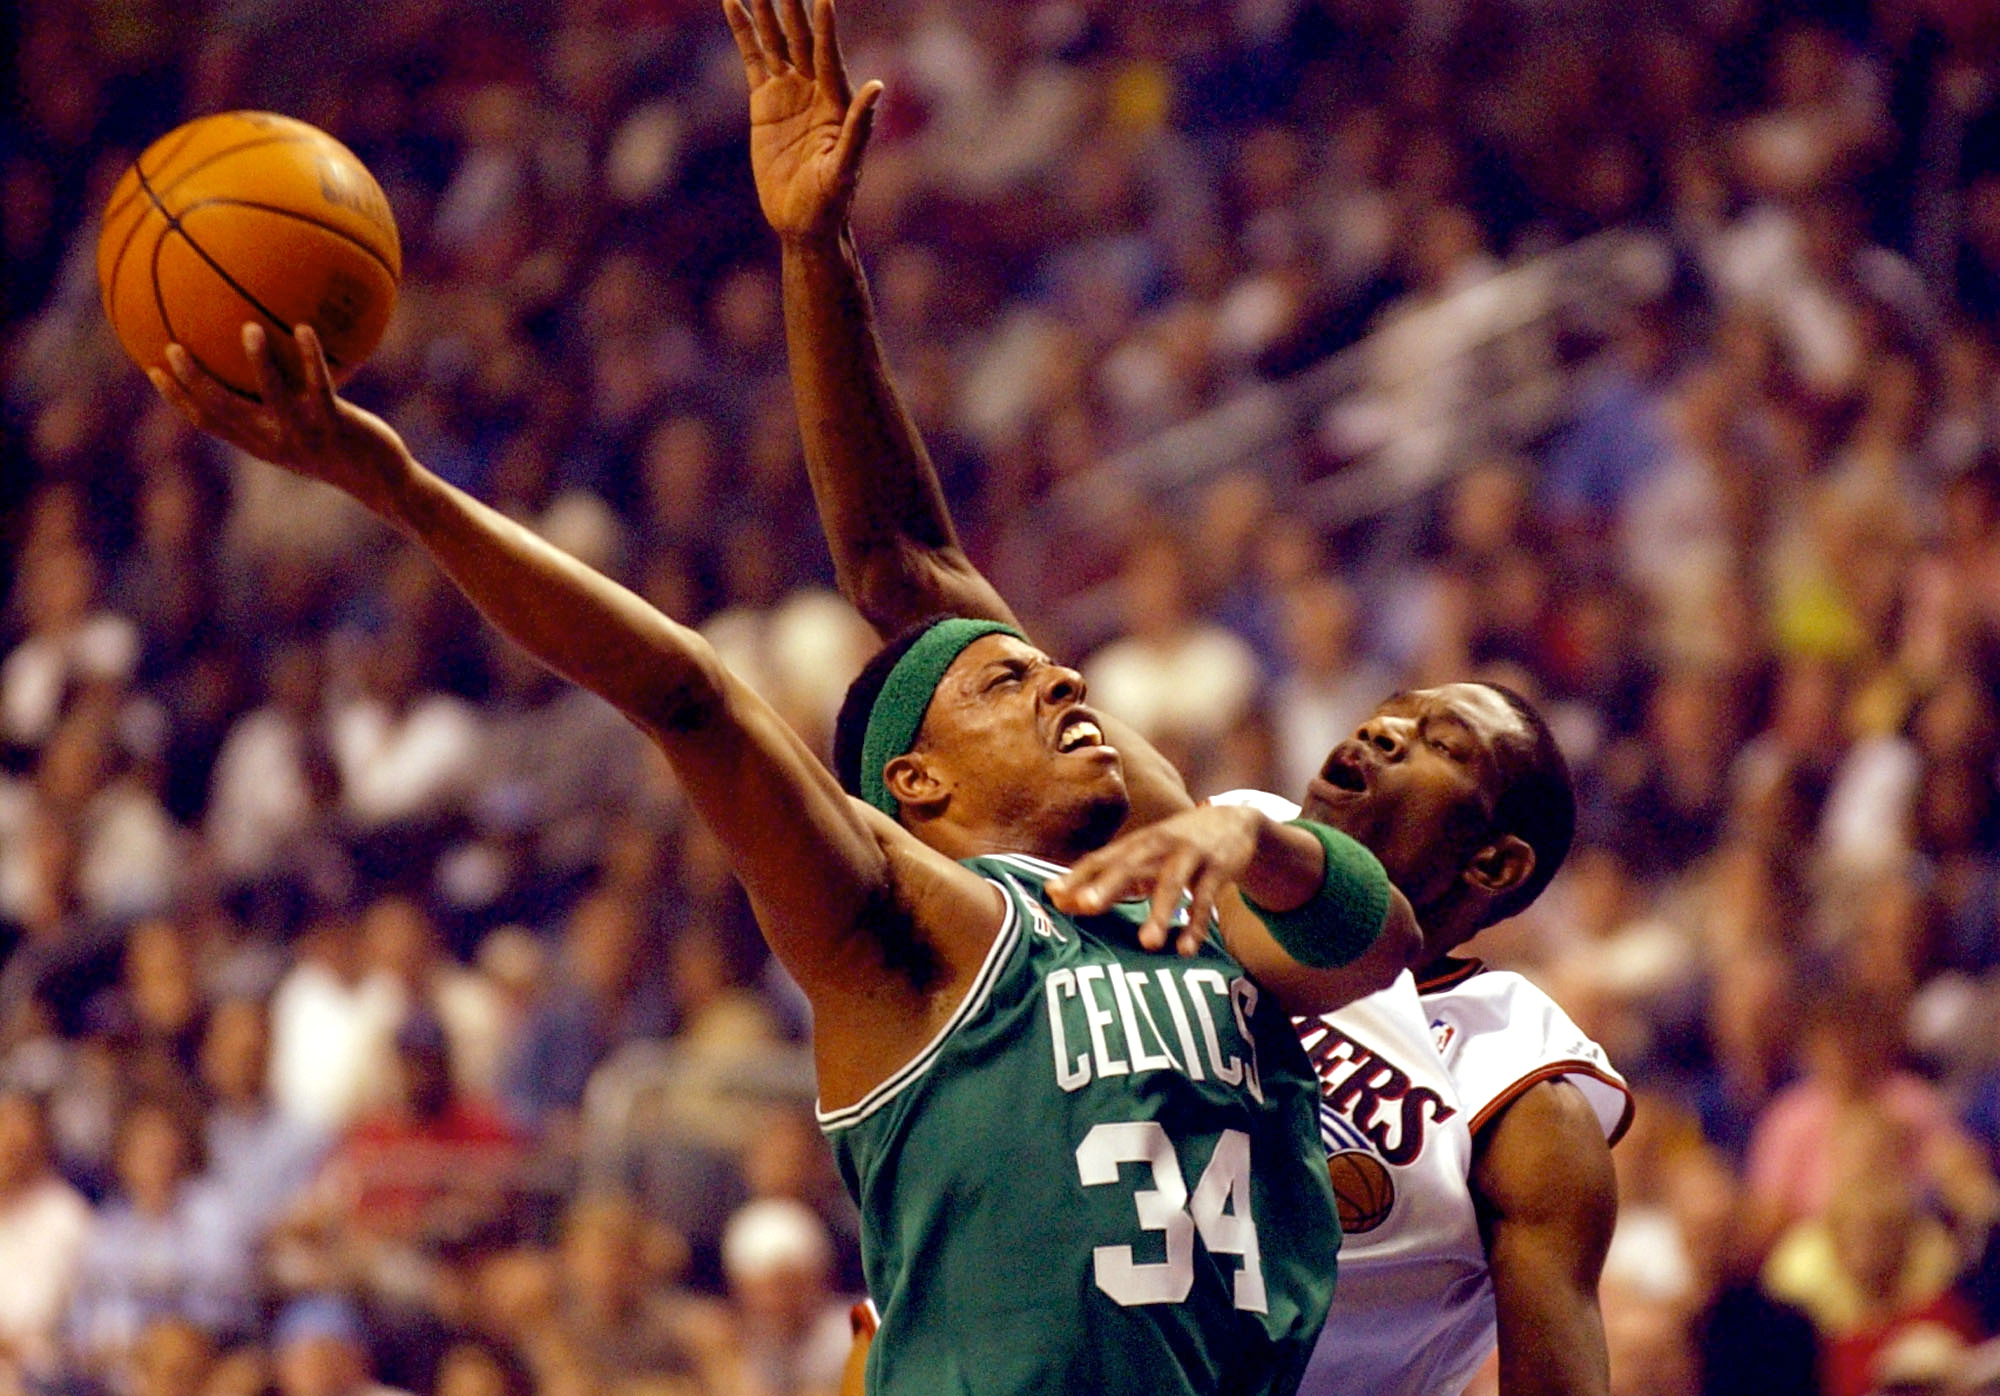 PHILADELPHIA-MAY 1: Paul Pierce #34 of the Boston Celtics looses control of a shot under the defense of Dikembe Mutombo #55 of the Philadelphia 76ers during game 4 of the Eastern Conference quarterfinal series during the 2002 NBA Playoffs at the First Uni